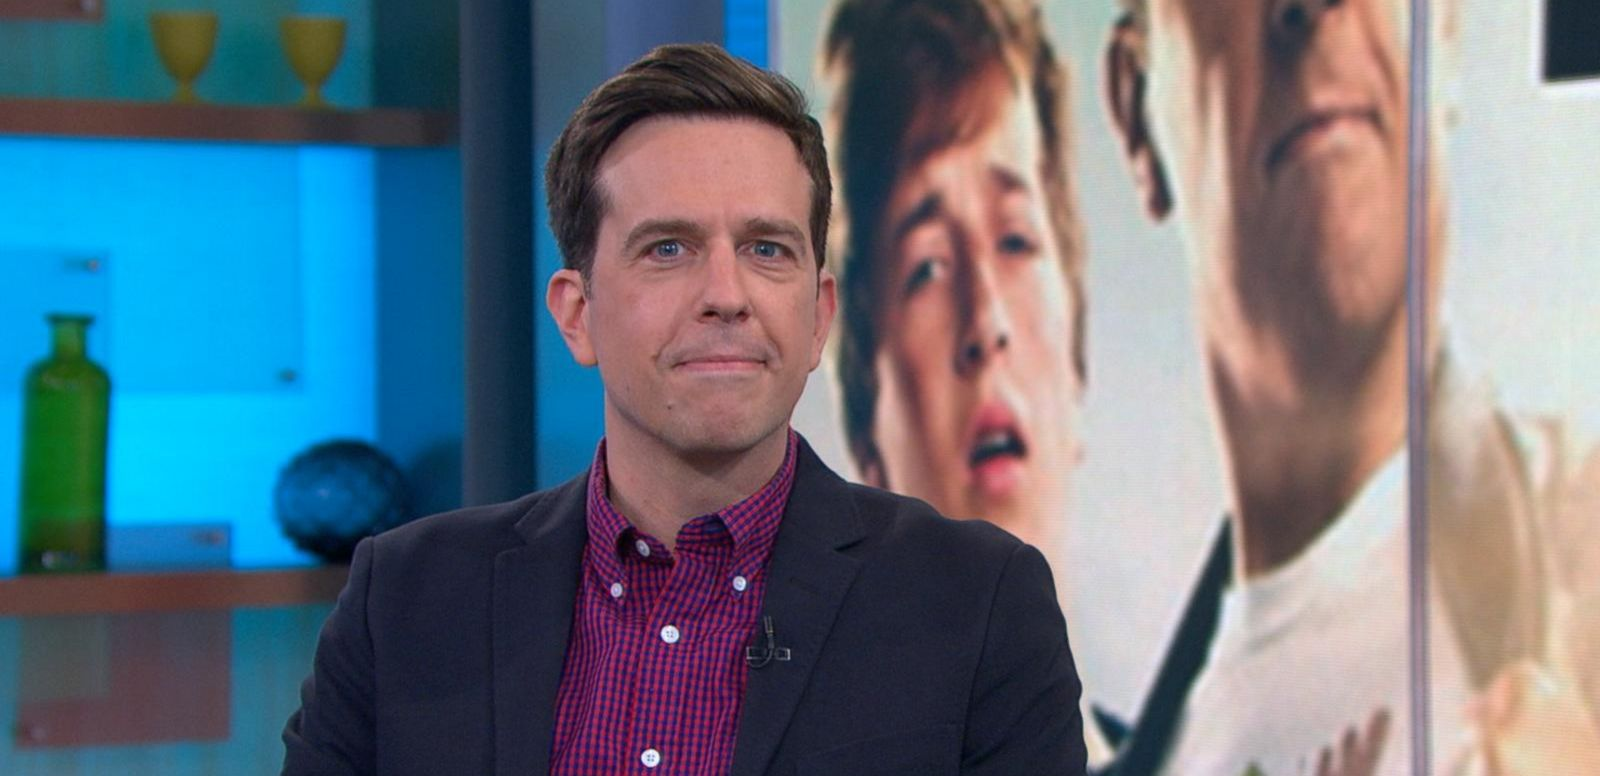 VIDEO: Ed Helms Is the Grown Up Rusty Griswold in 'Vacation'